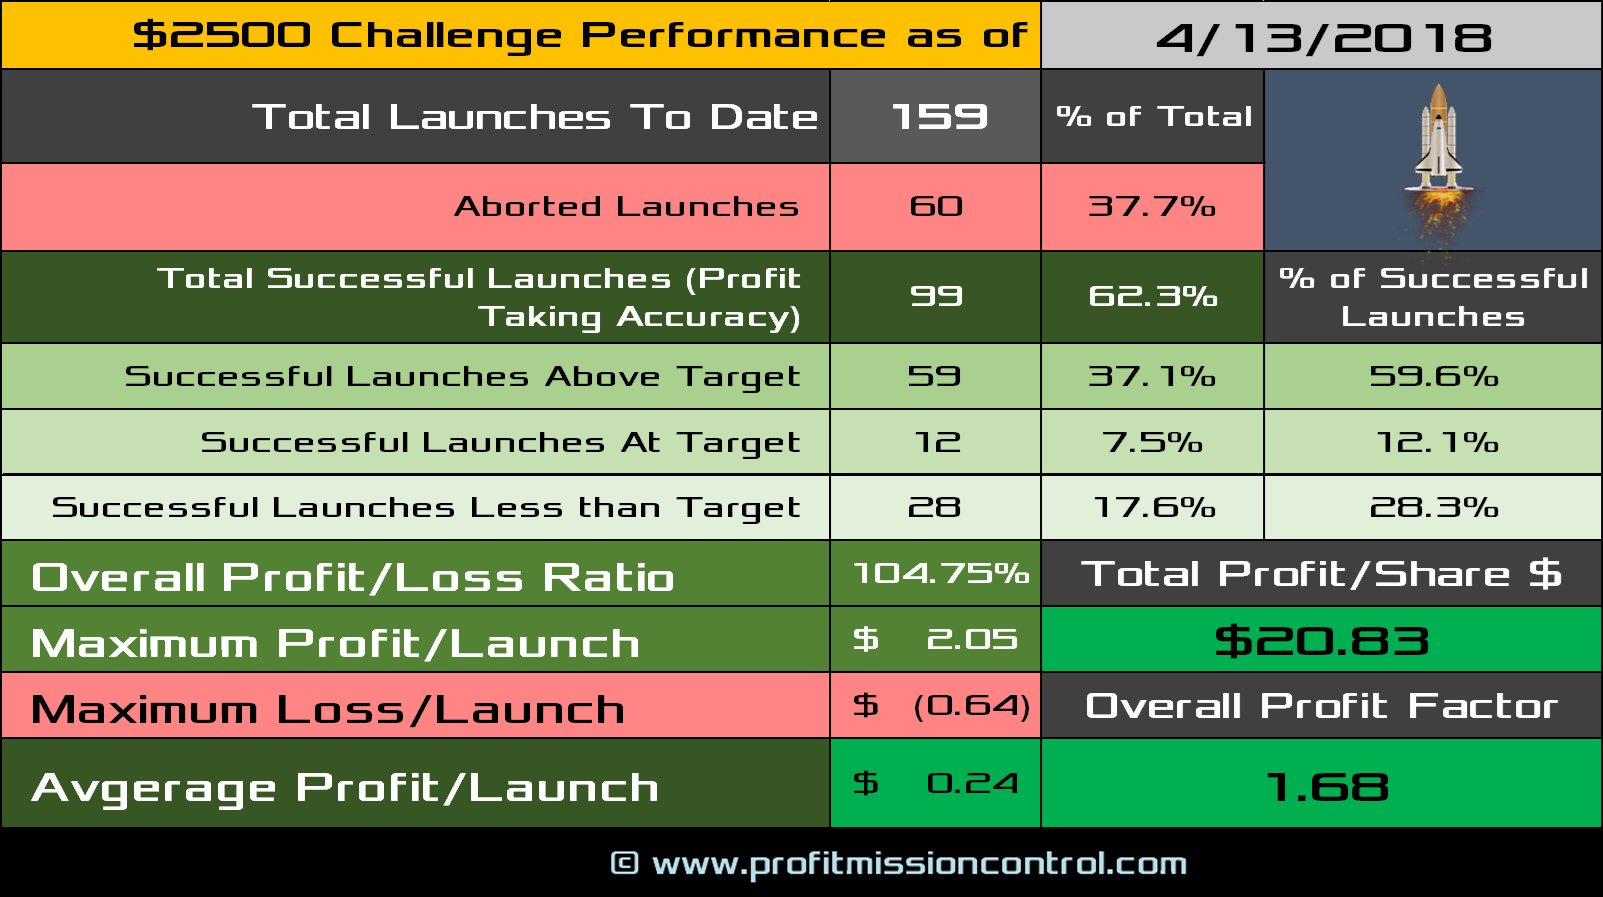 performance card 04-13-2018